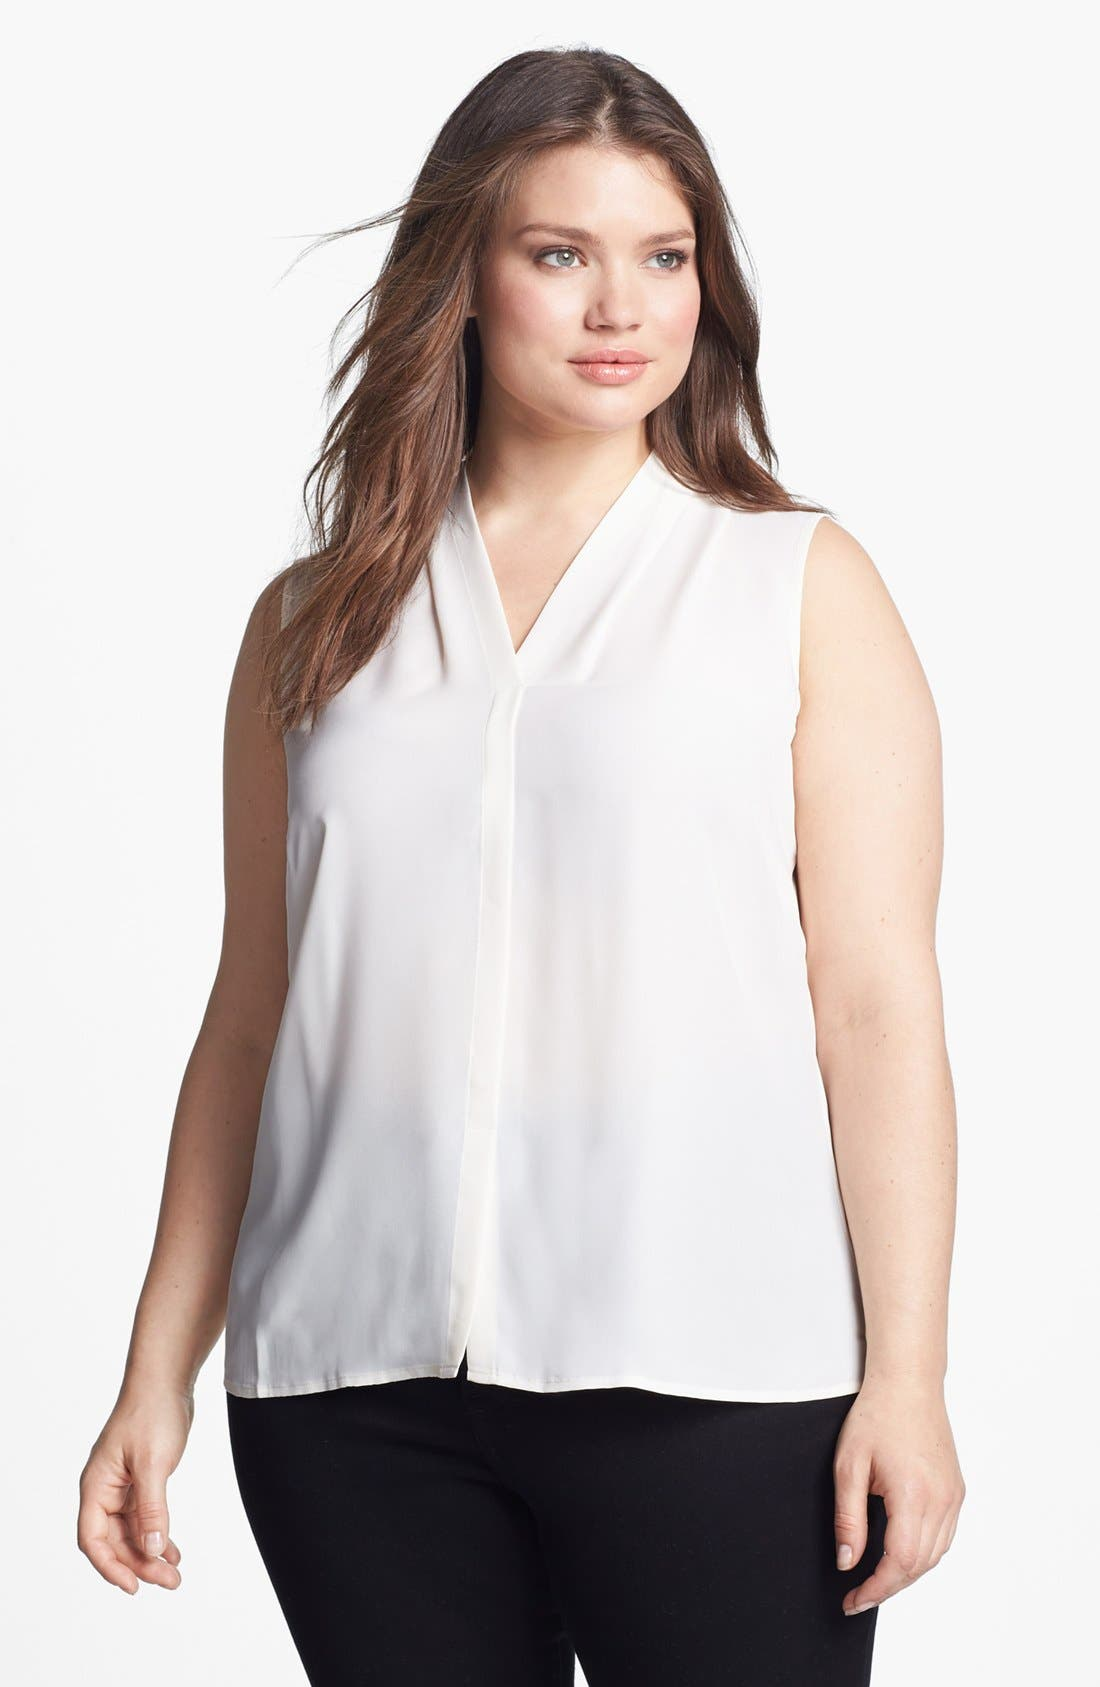 Alternate Image 1 Selected - Nic + Zoe 'Day to Night' Sleeveless Blouse (Plus Size)